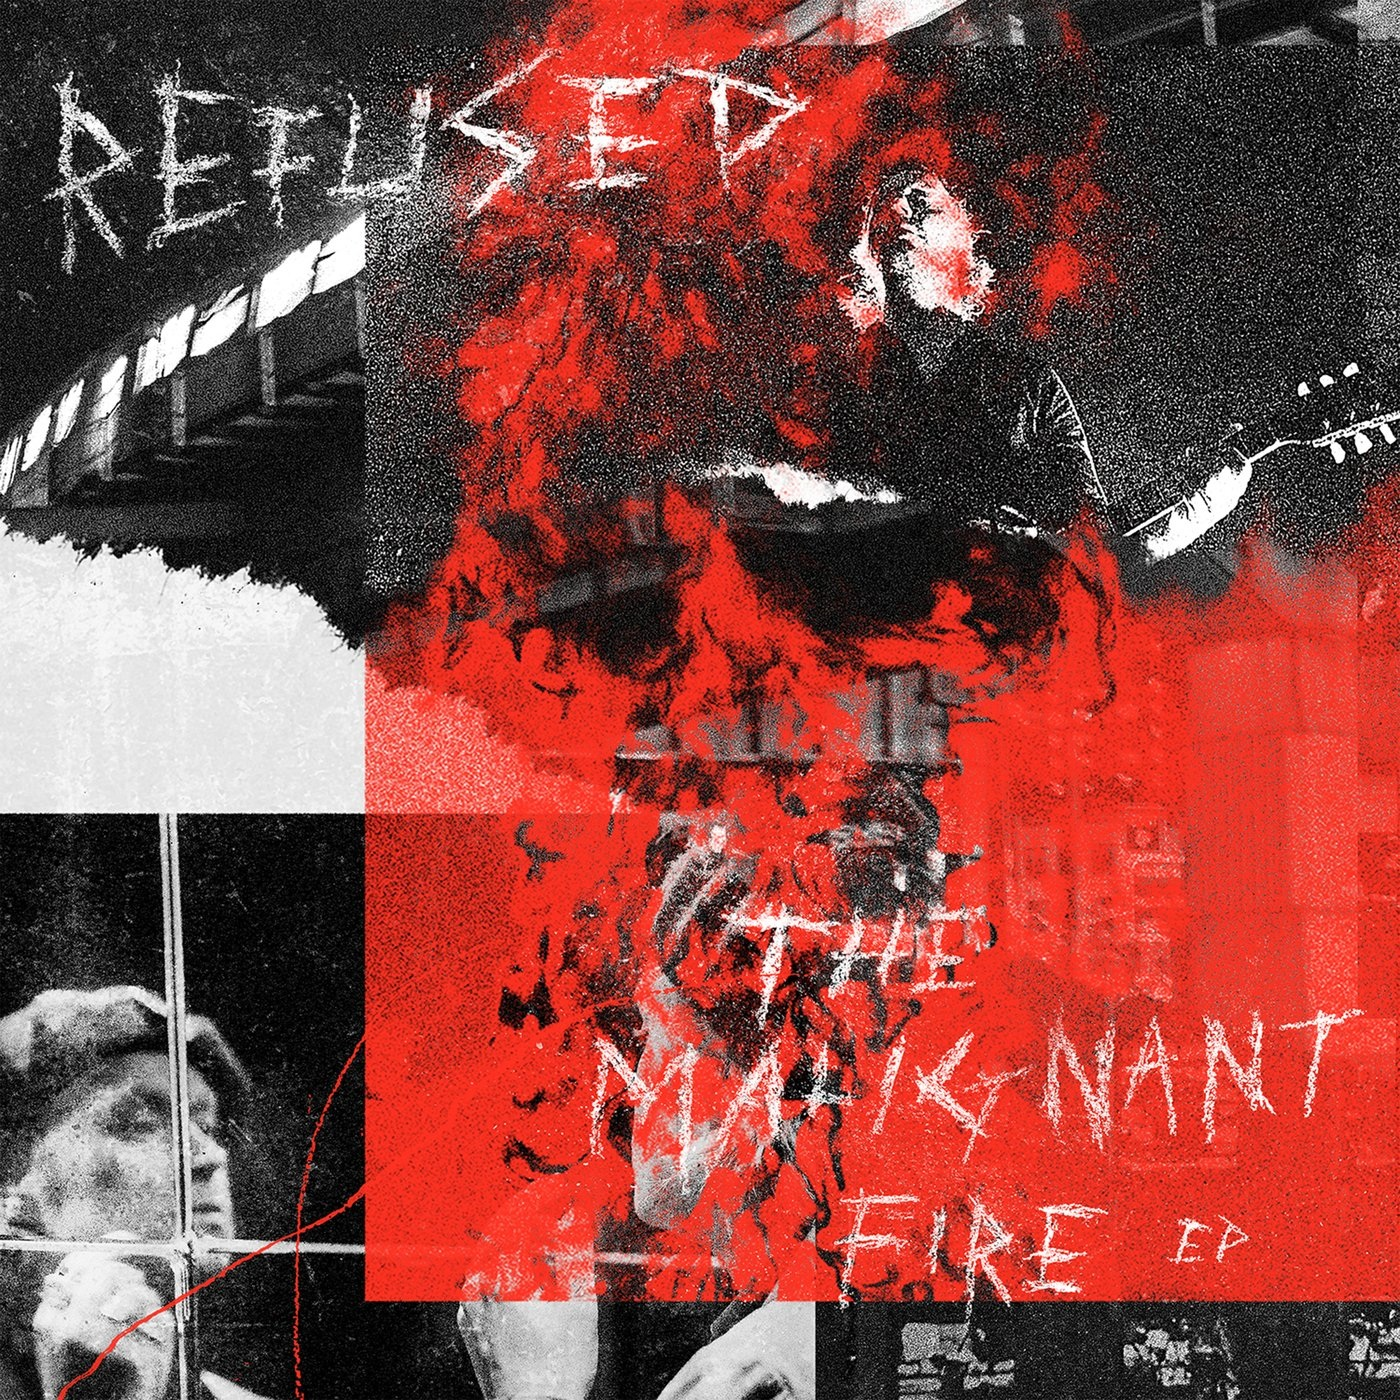 Refused - The Malignant Fire [EP] (2020)